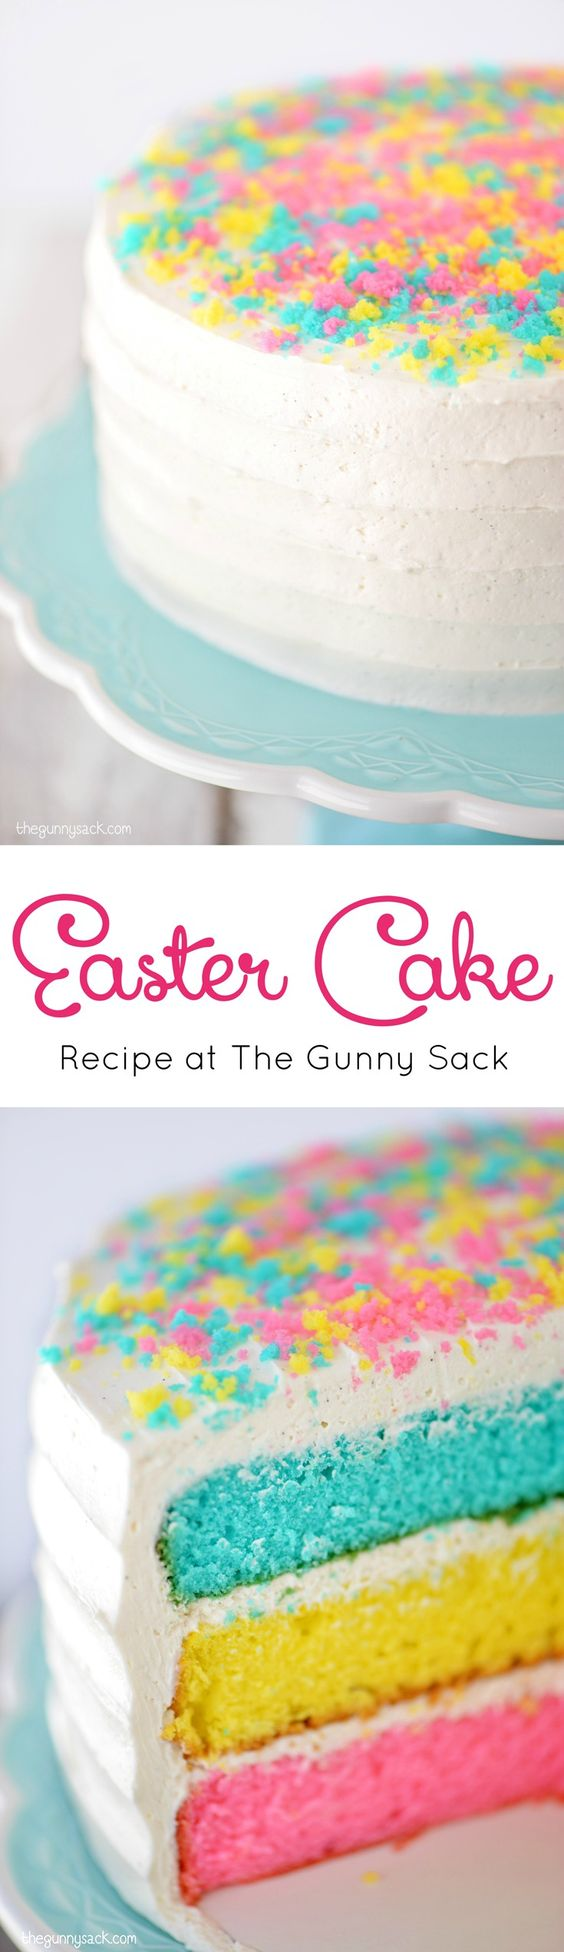 This Easter Cake recipe is easy to make, pretty to look at and fun to eat! It is covered with a fluffy vanilla bean frosting.: